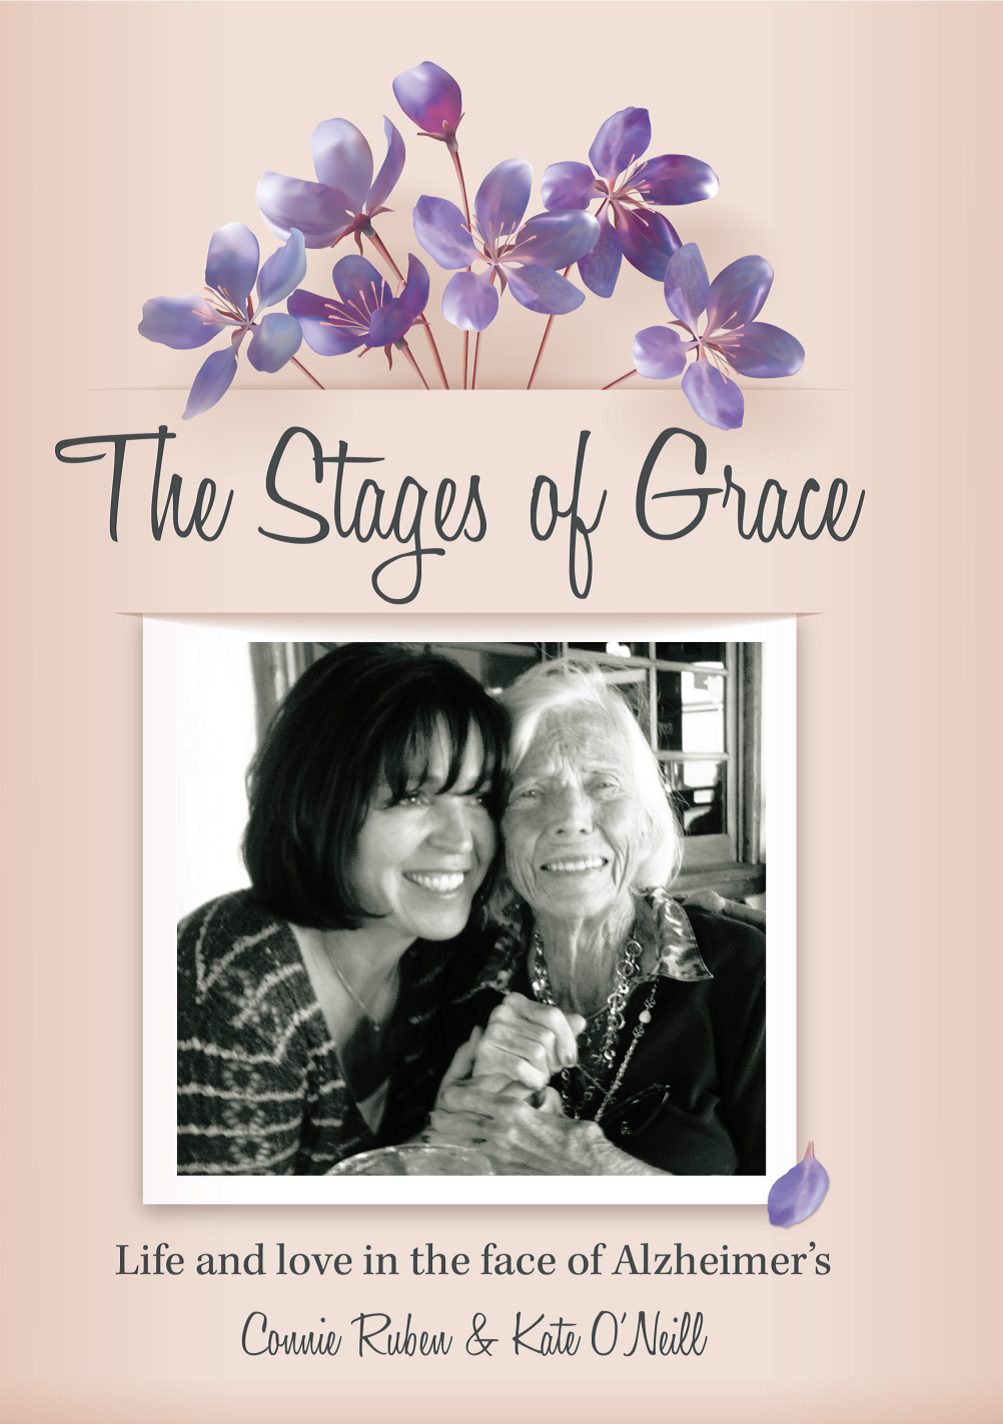 """The Stages of Grace"" Reveals a Daughter-in-Law's Raw Emotions and Journey Tending to her Alzheimer's Struck Mother"